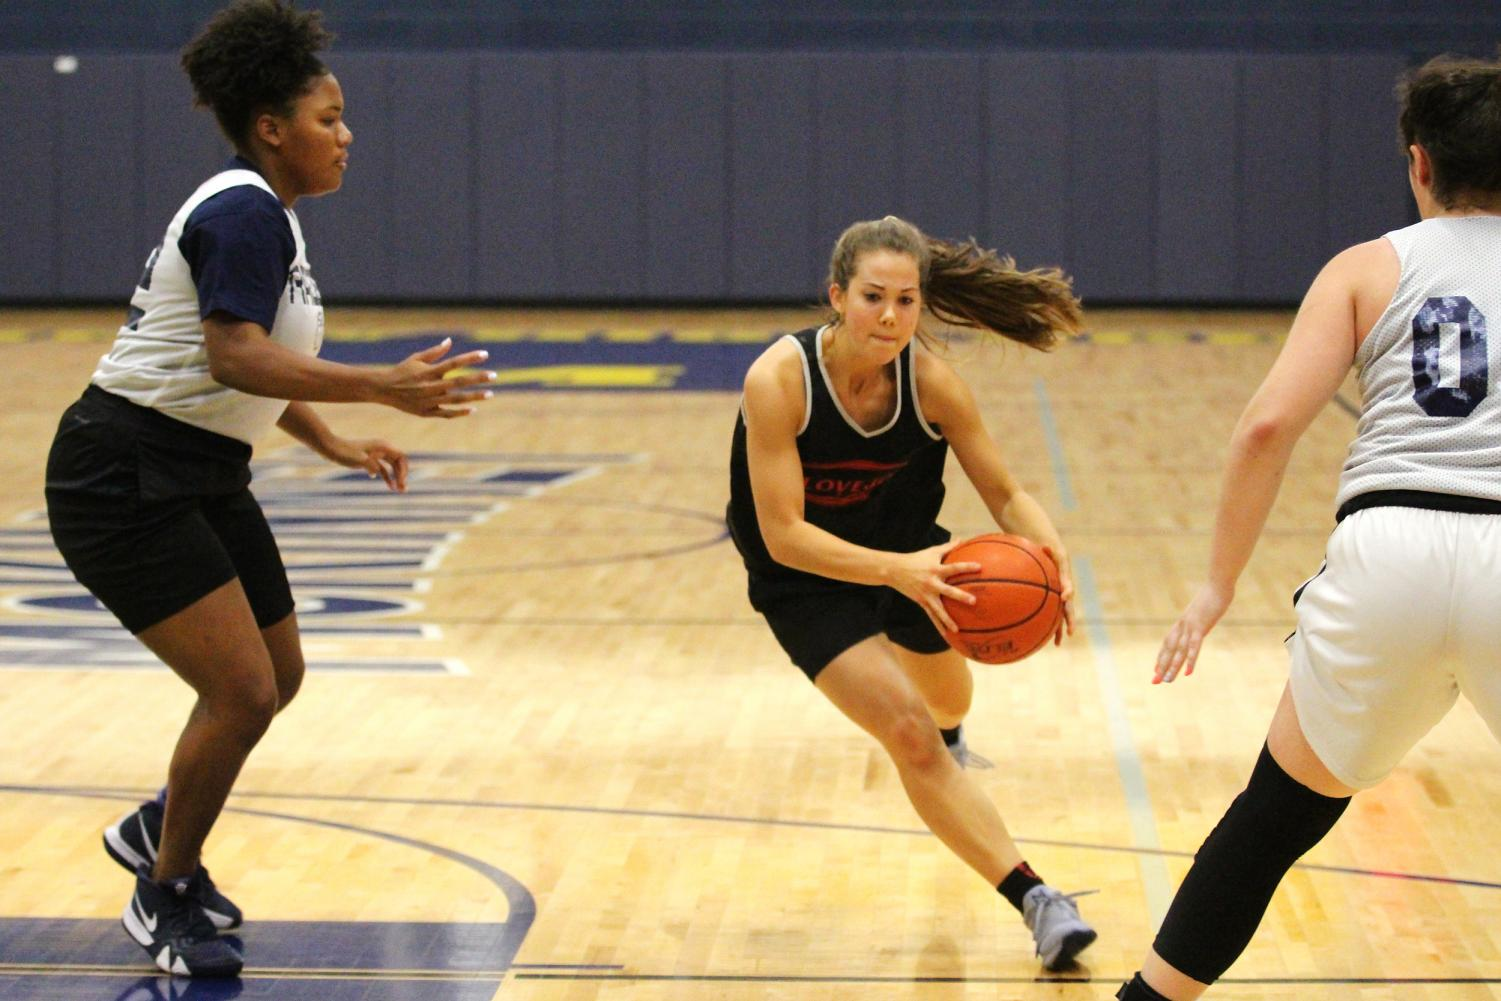 Senior Grace Bennet drives into the lane for a layup at the fall ball basketball game against Wylie East, a district opponent.